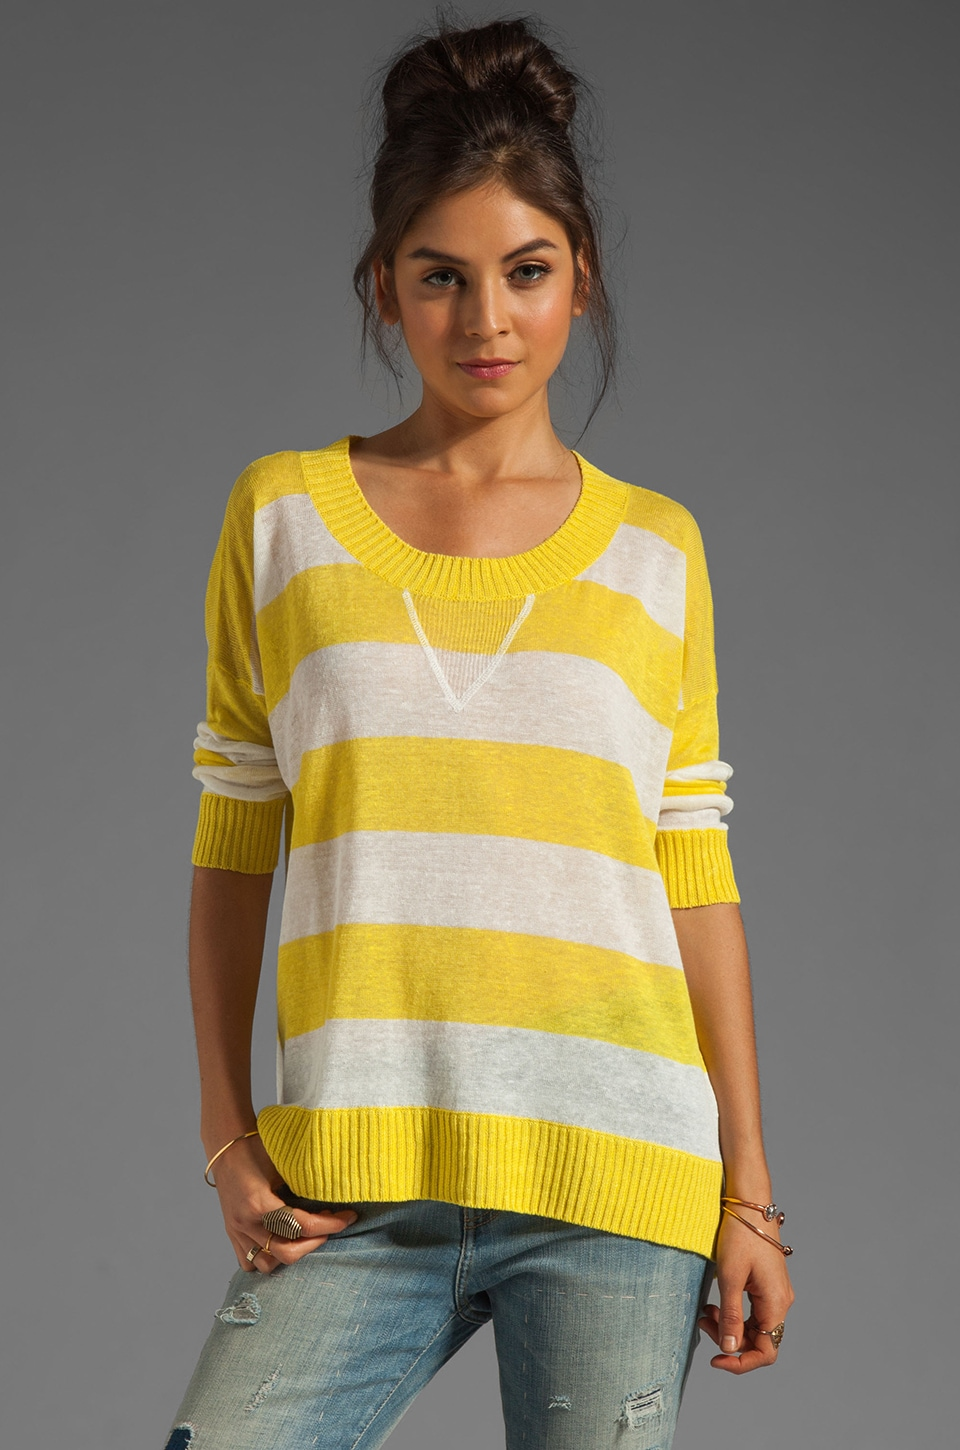 Central Park West Texarkana Striped Pullover in Yellow/White